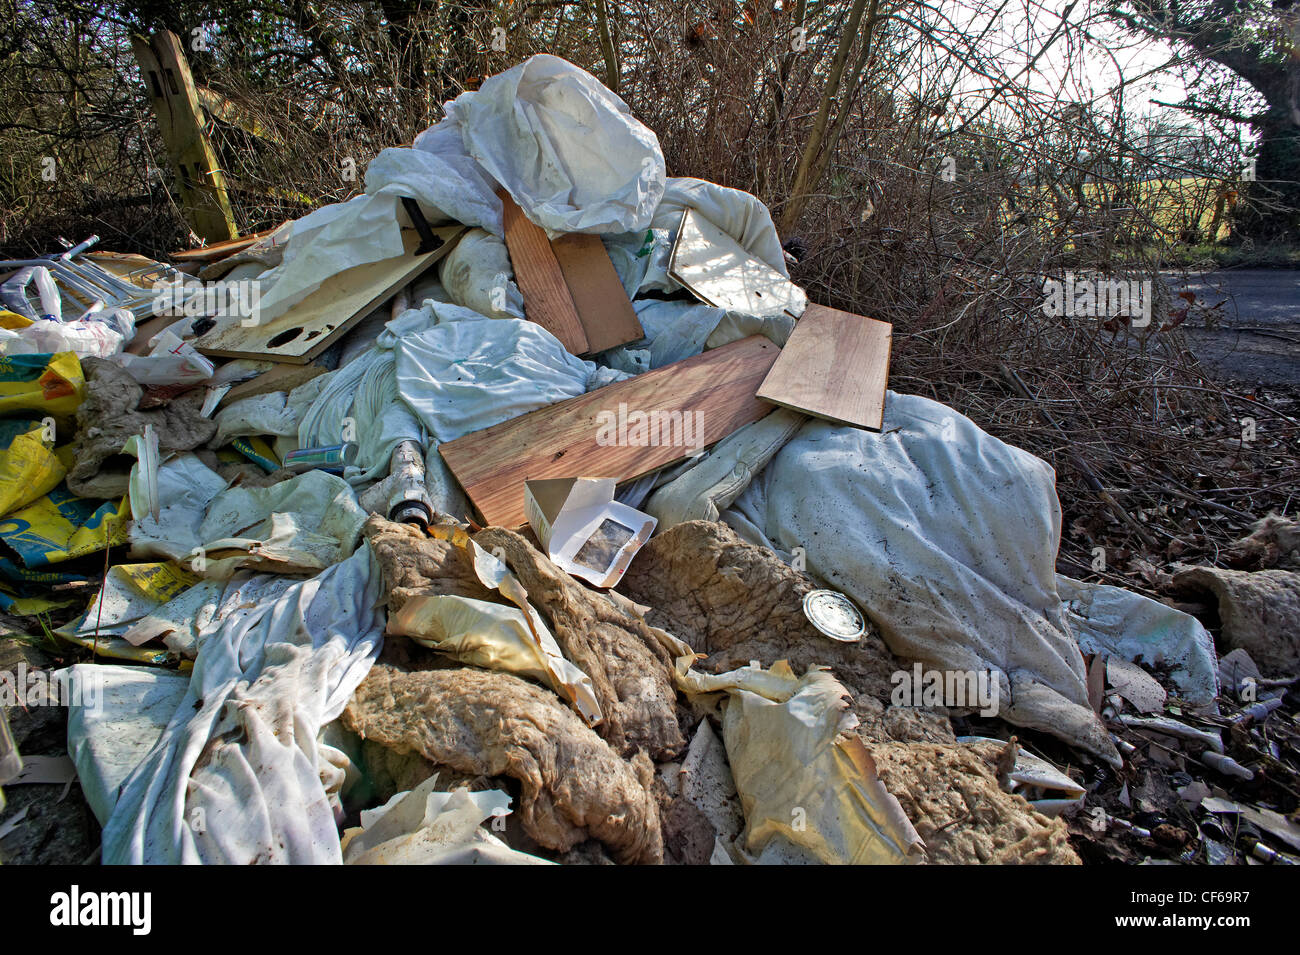 Fly tipping on country road - Stock Image